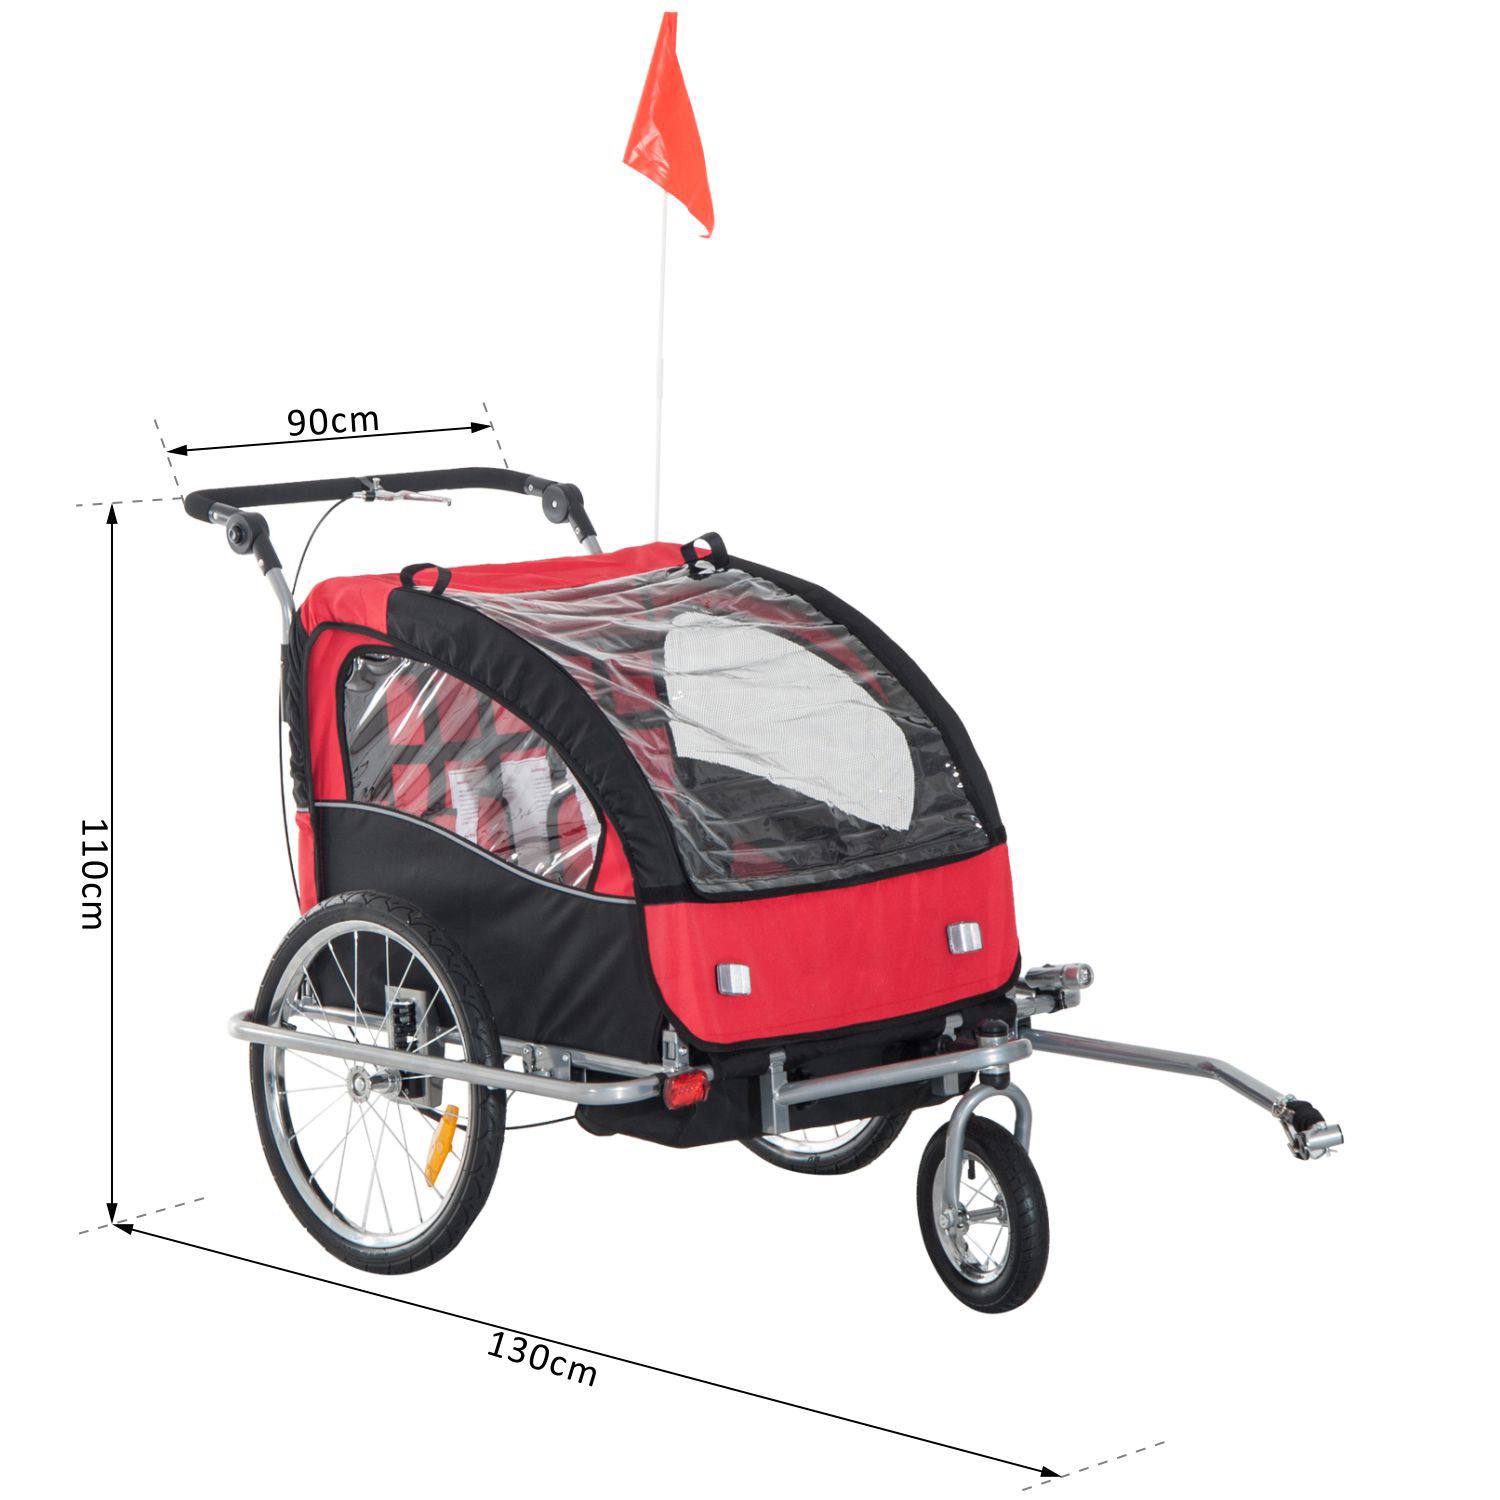 2-Seater-Child-Bike-Trailer-Kids-Carrier-Safety-Harness-Baby-Stroller-Jogger thumbnail 3